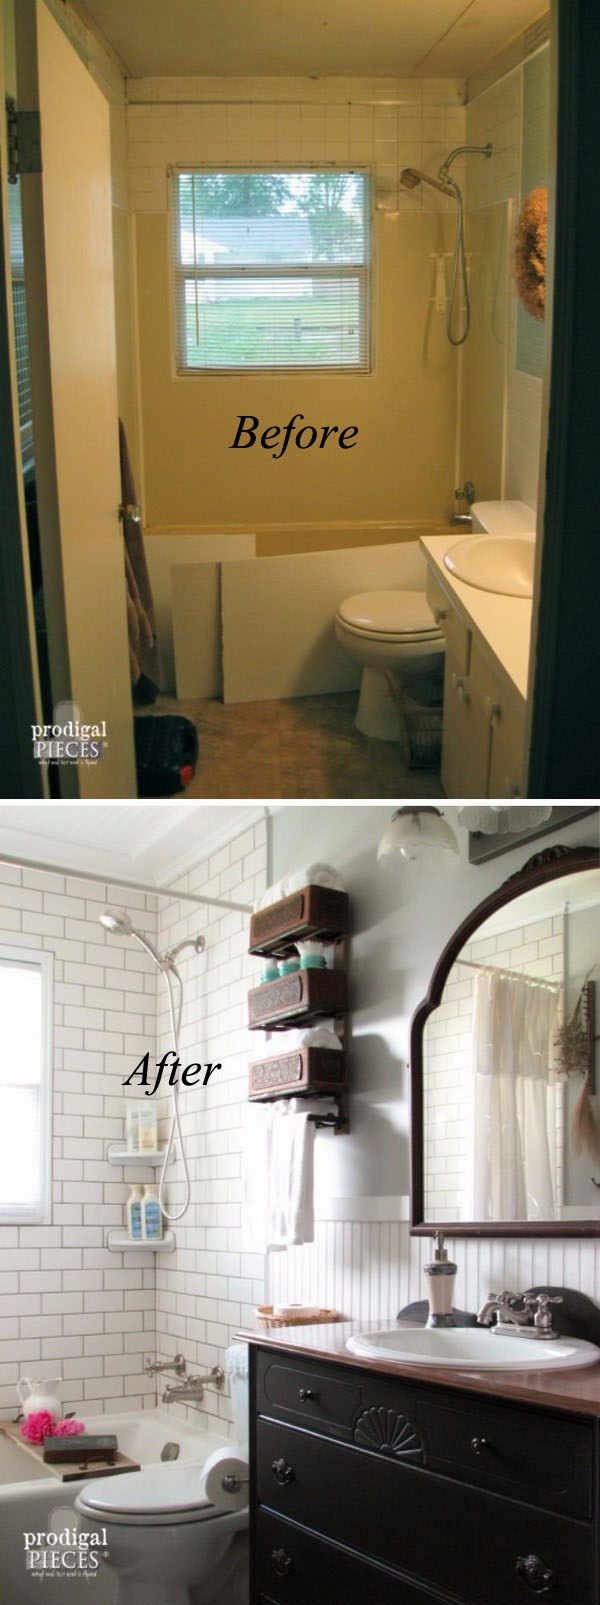 45-46-bathroom-remodel-before-and-after